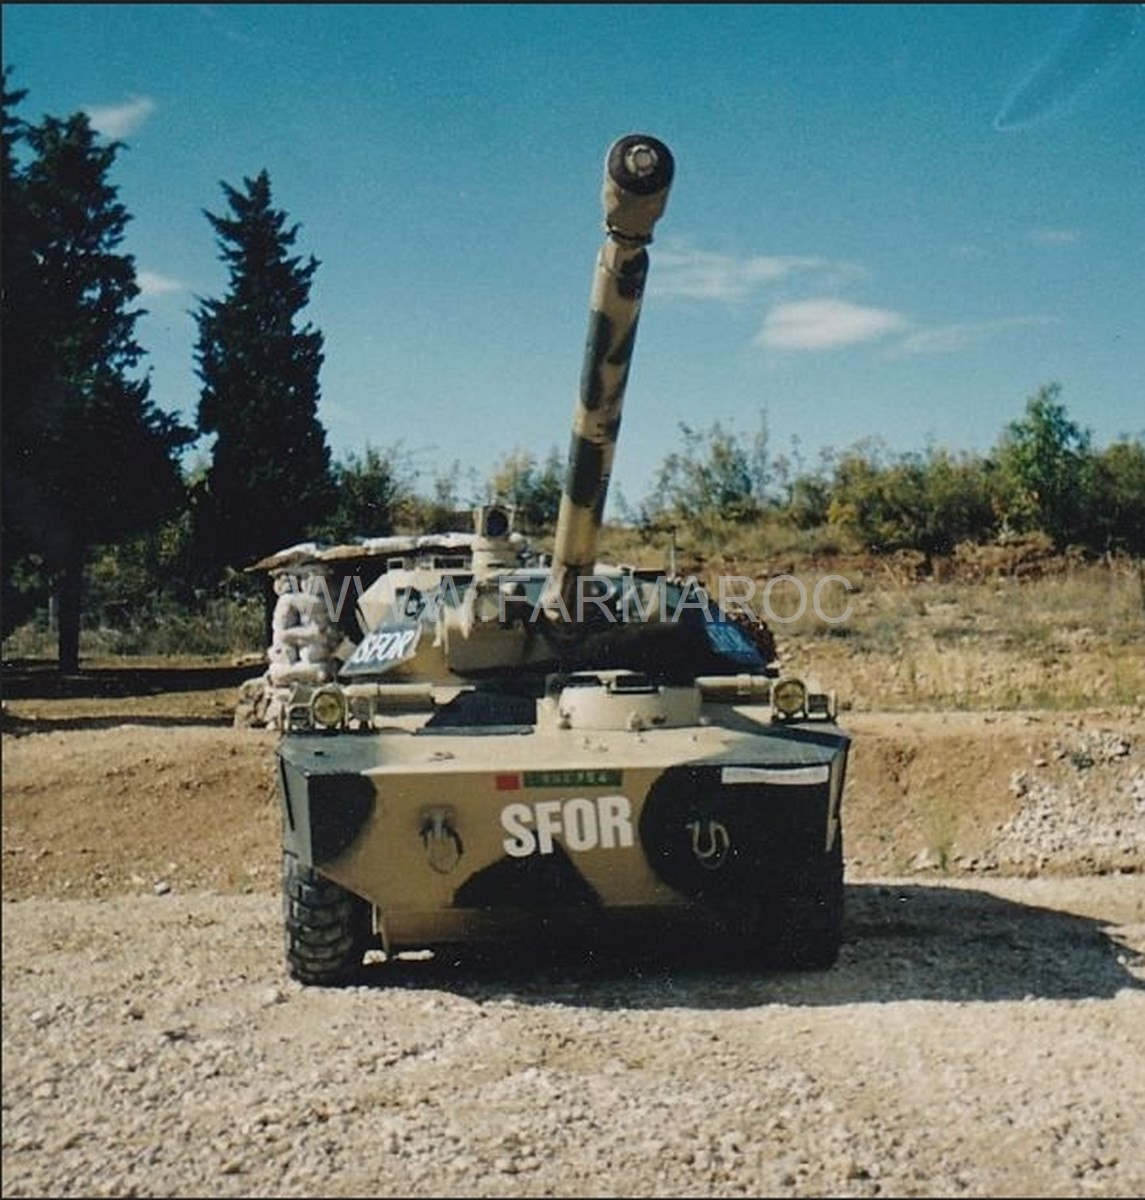 Photos - Véhicules blindées / Armored Vehicles, APC and IFV - Page 2 Amx_1010